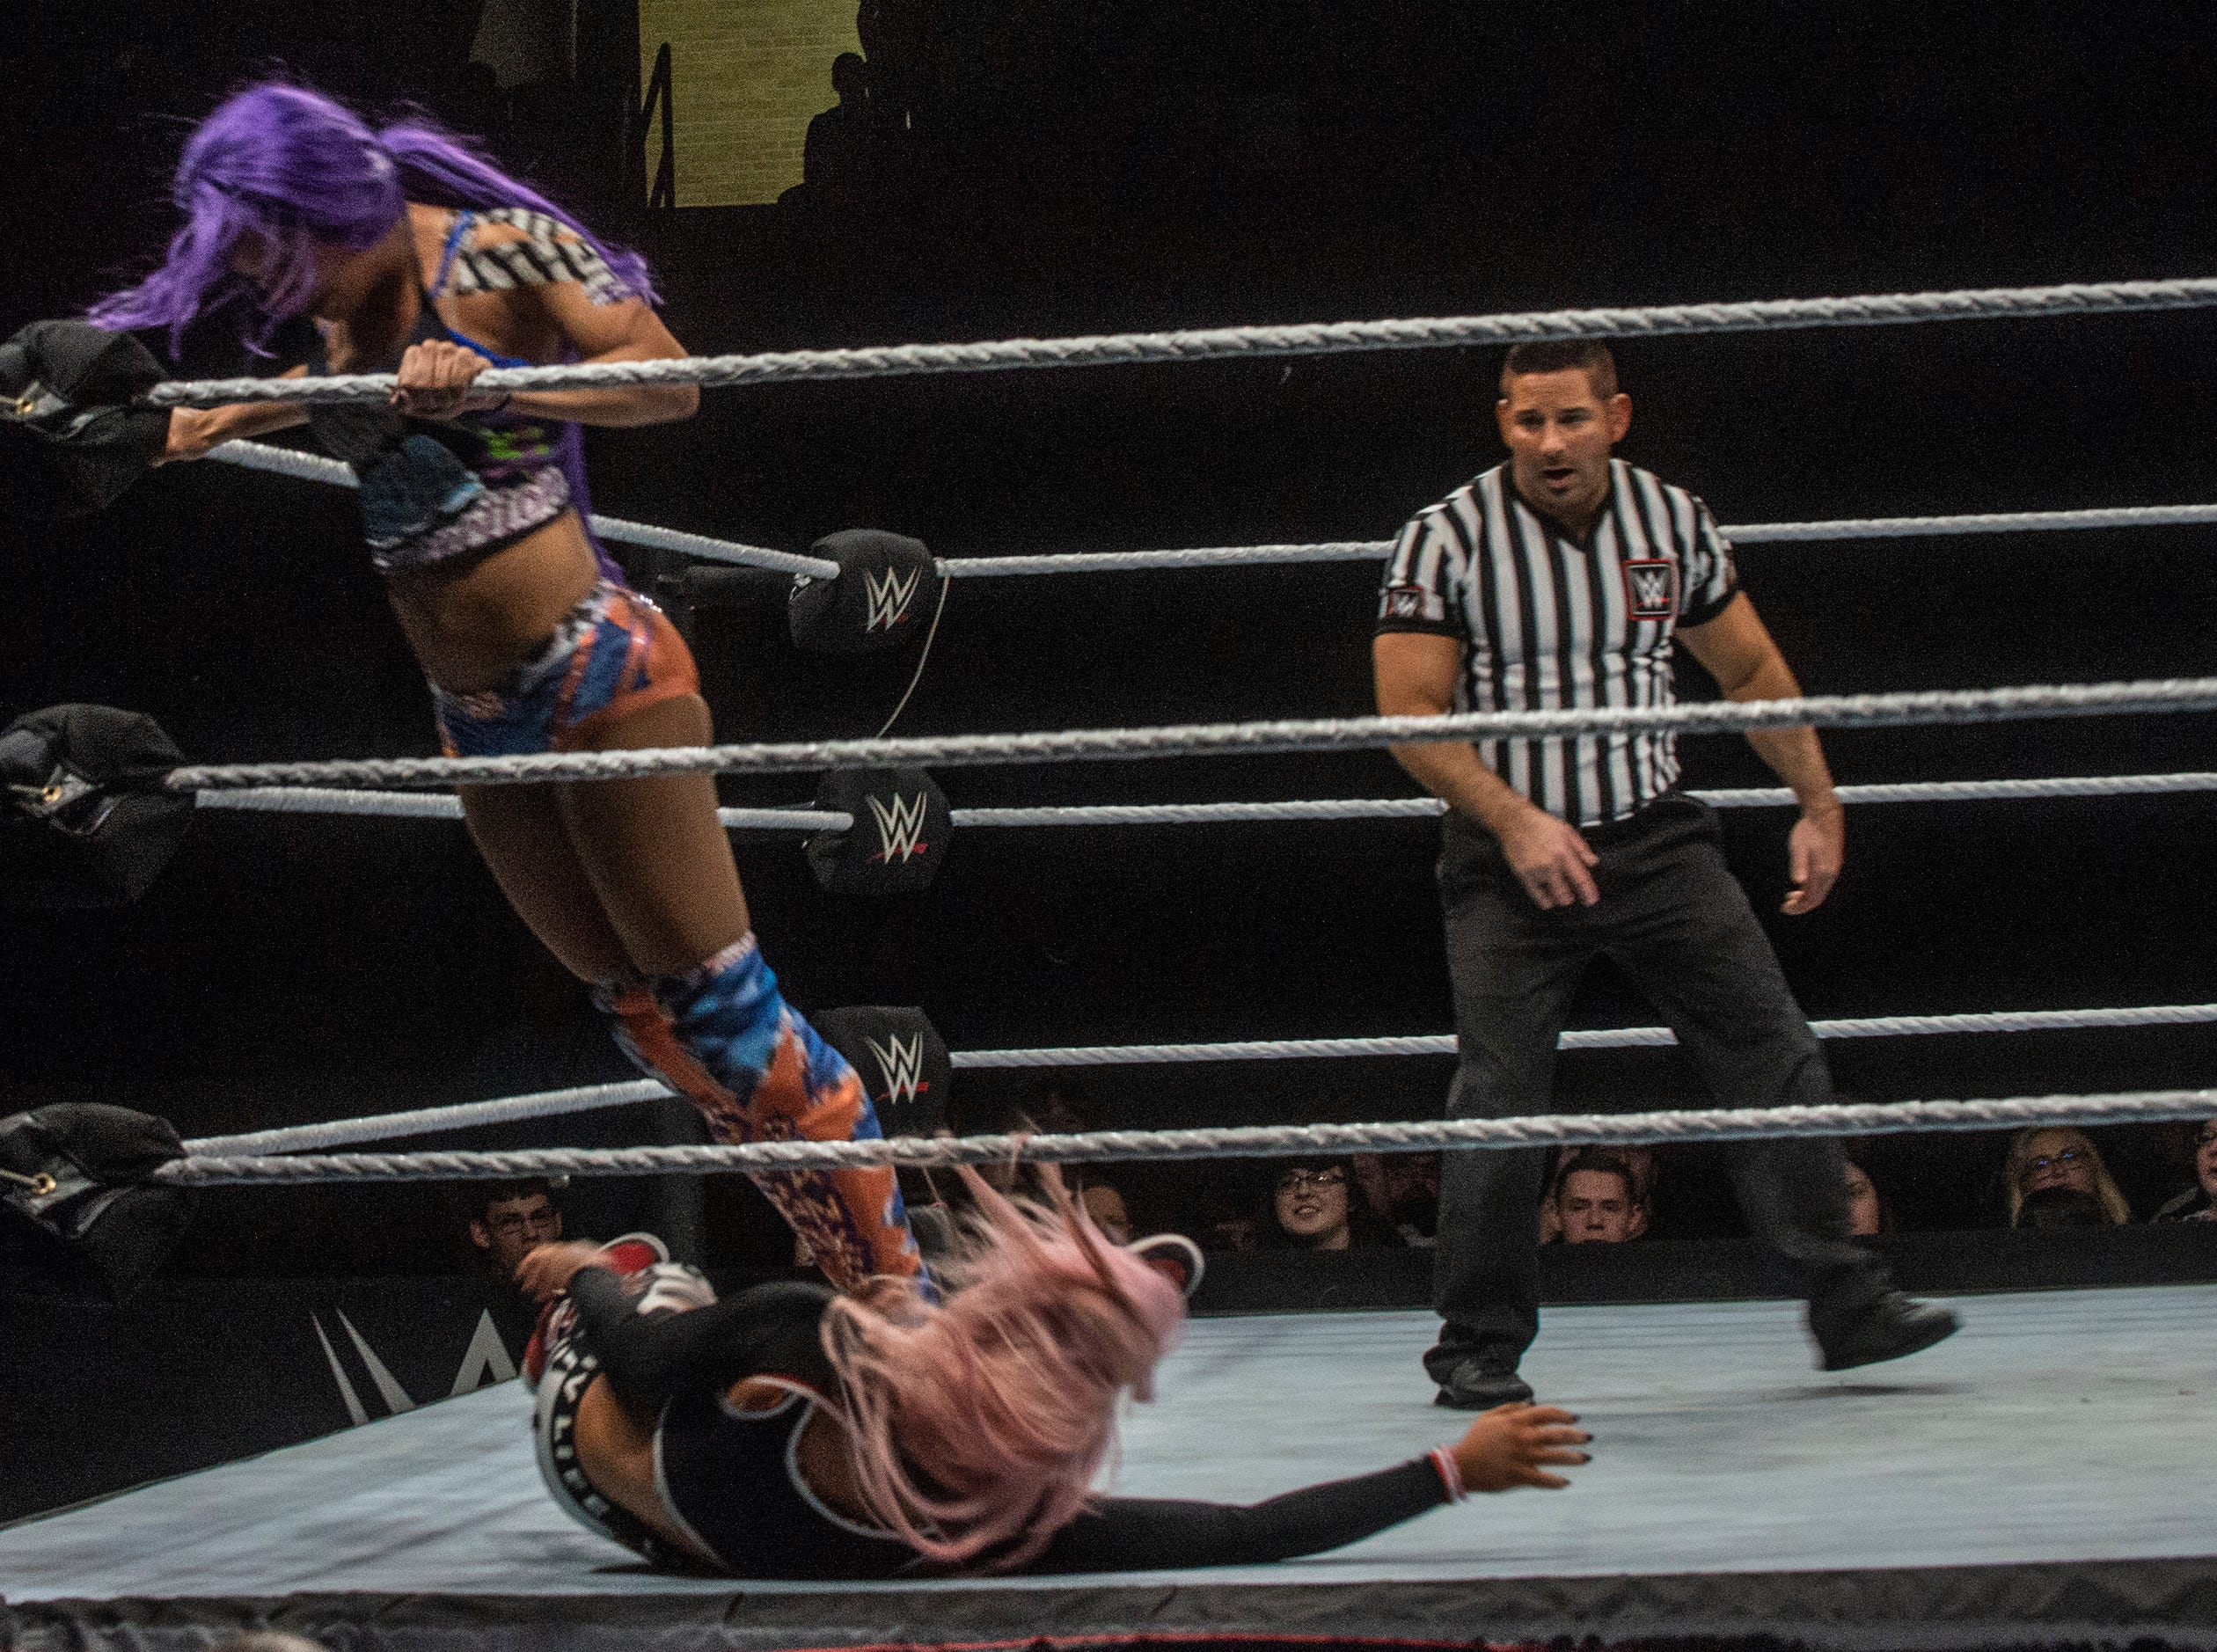 Sasha Banks delivers a stomp in the corner. Sasha Banks and Bayley defend their tag team championship against the Riott Squad. WWE Live Road to Wrestlemania came to Garrett Coliseum in Montgomery on Sunday, Feb. 24, 2019.